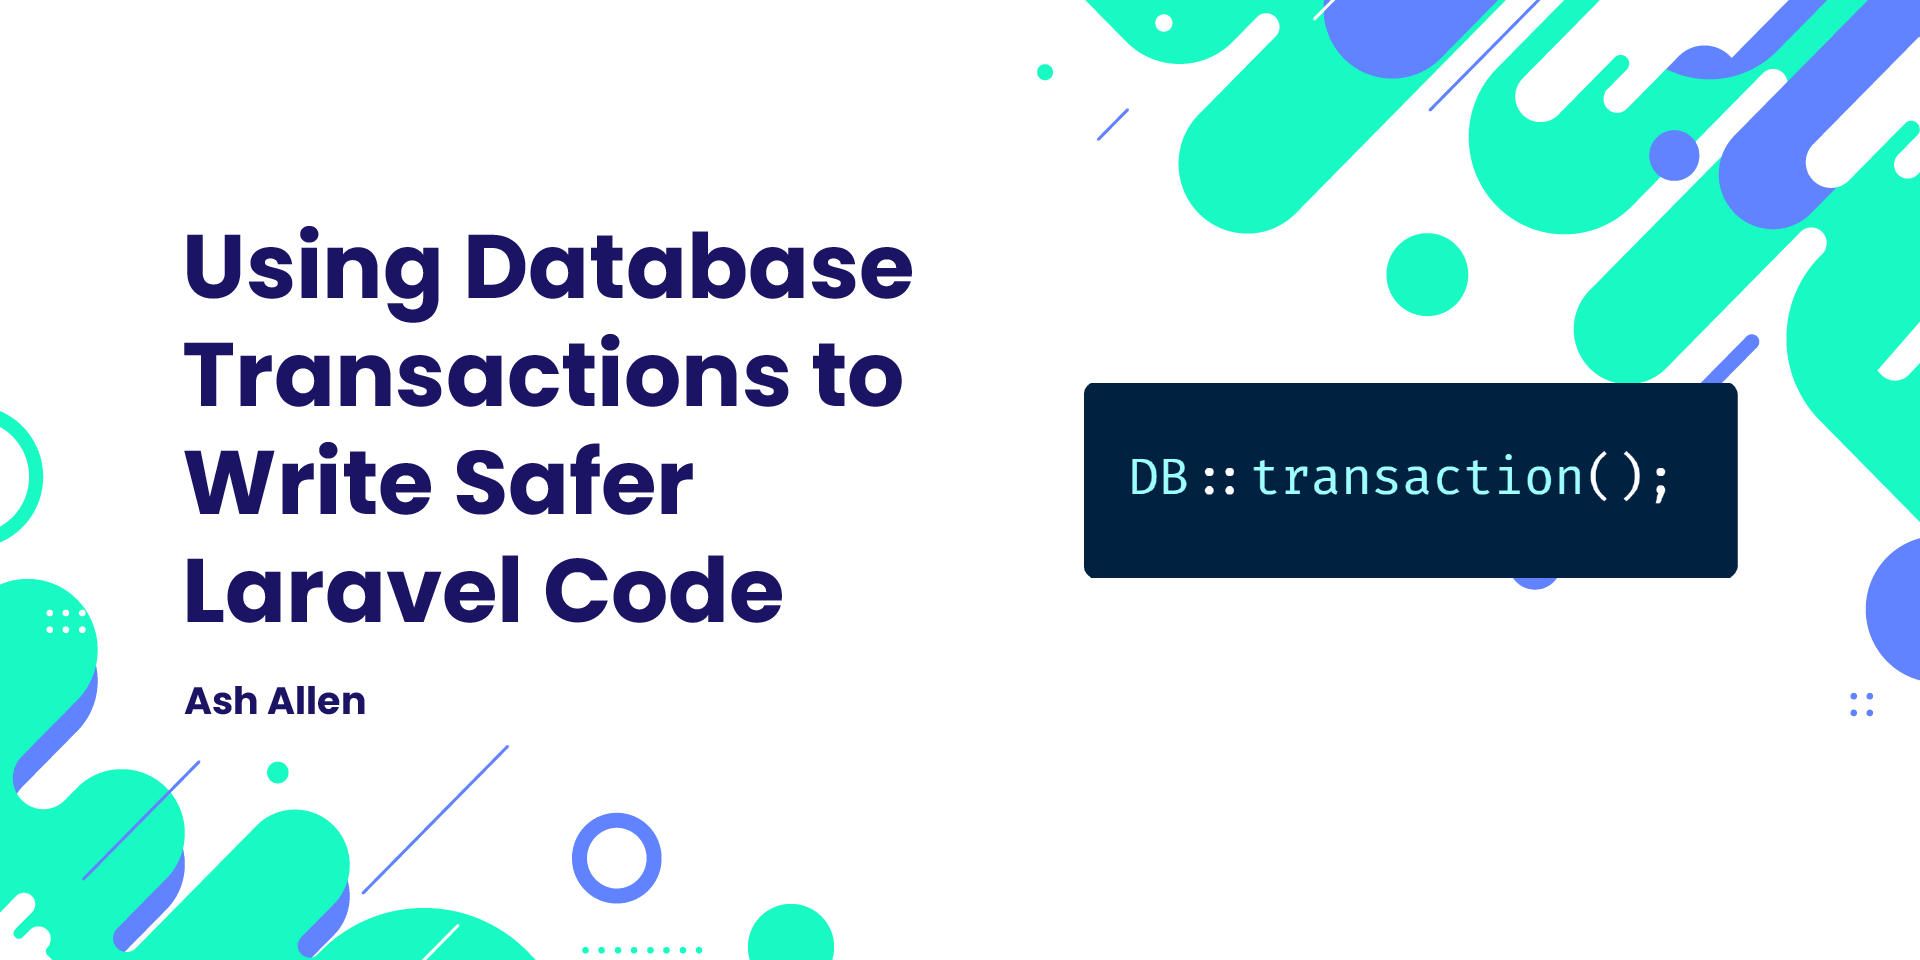 Learn about how to use database transactions in Laravel to improve data accuracy. The article also covers caveats of using database transactions inside queued jobs.